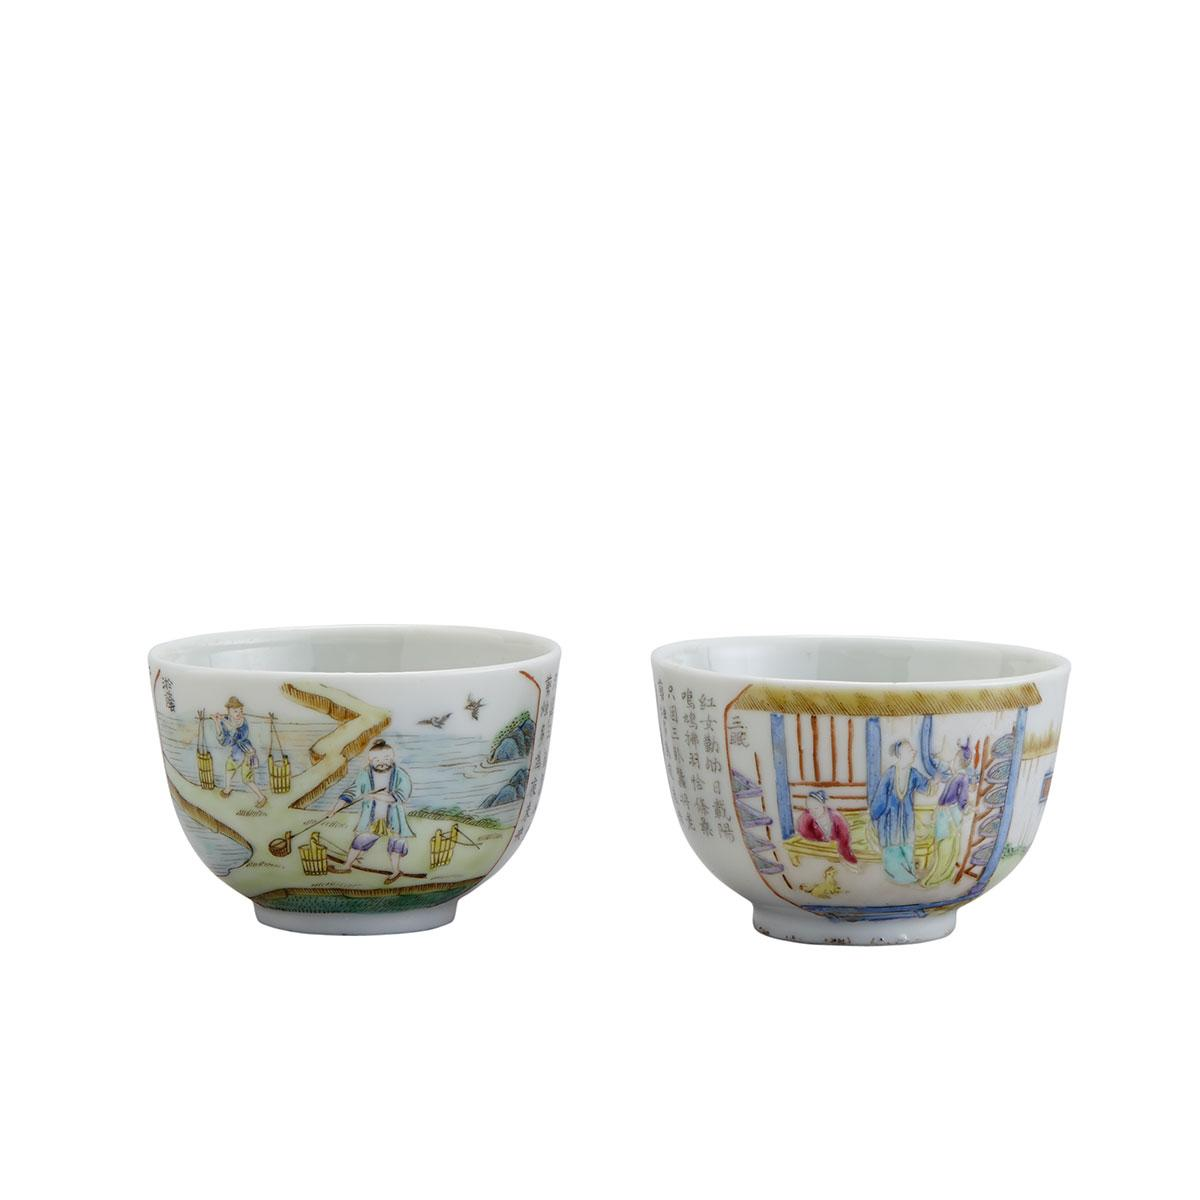 Pair of Famille Rose Wine Cups, Daoguang Mark, Republican Period